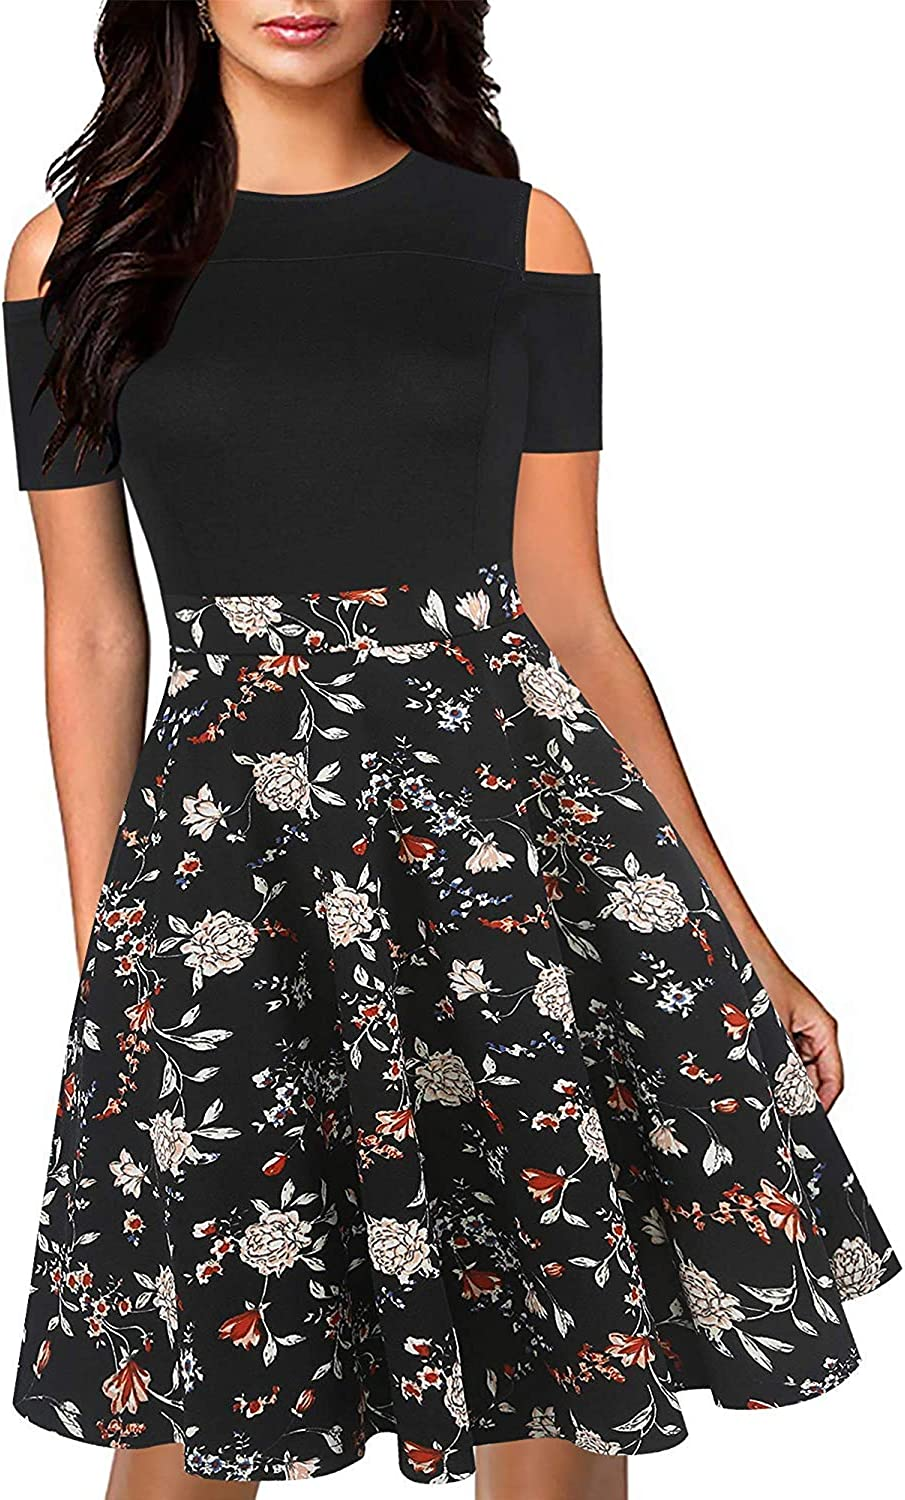 oxiuly Women's Chic Off Shoulder Floral Flare Patchwork Party Cocktail Casual Pockets Swing Dress OX266